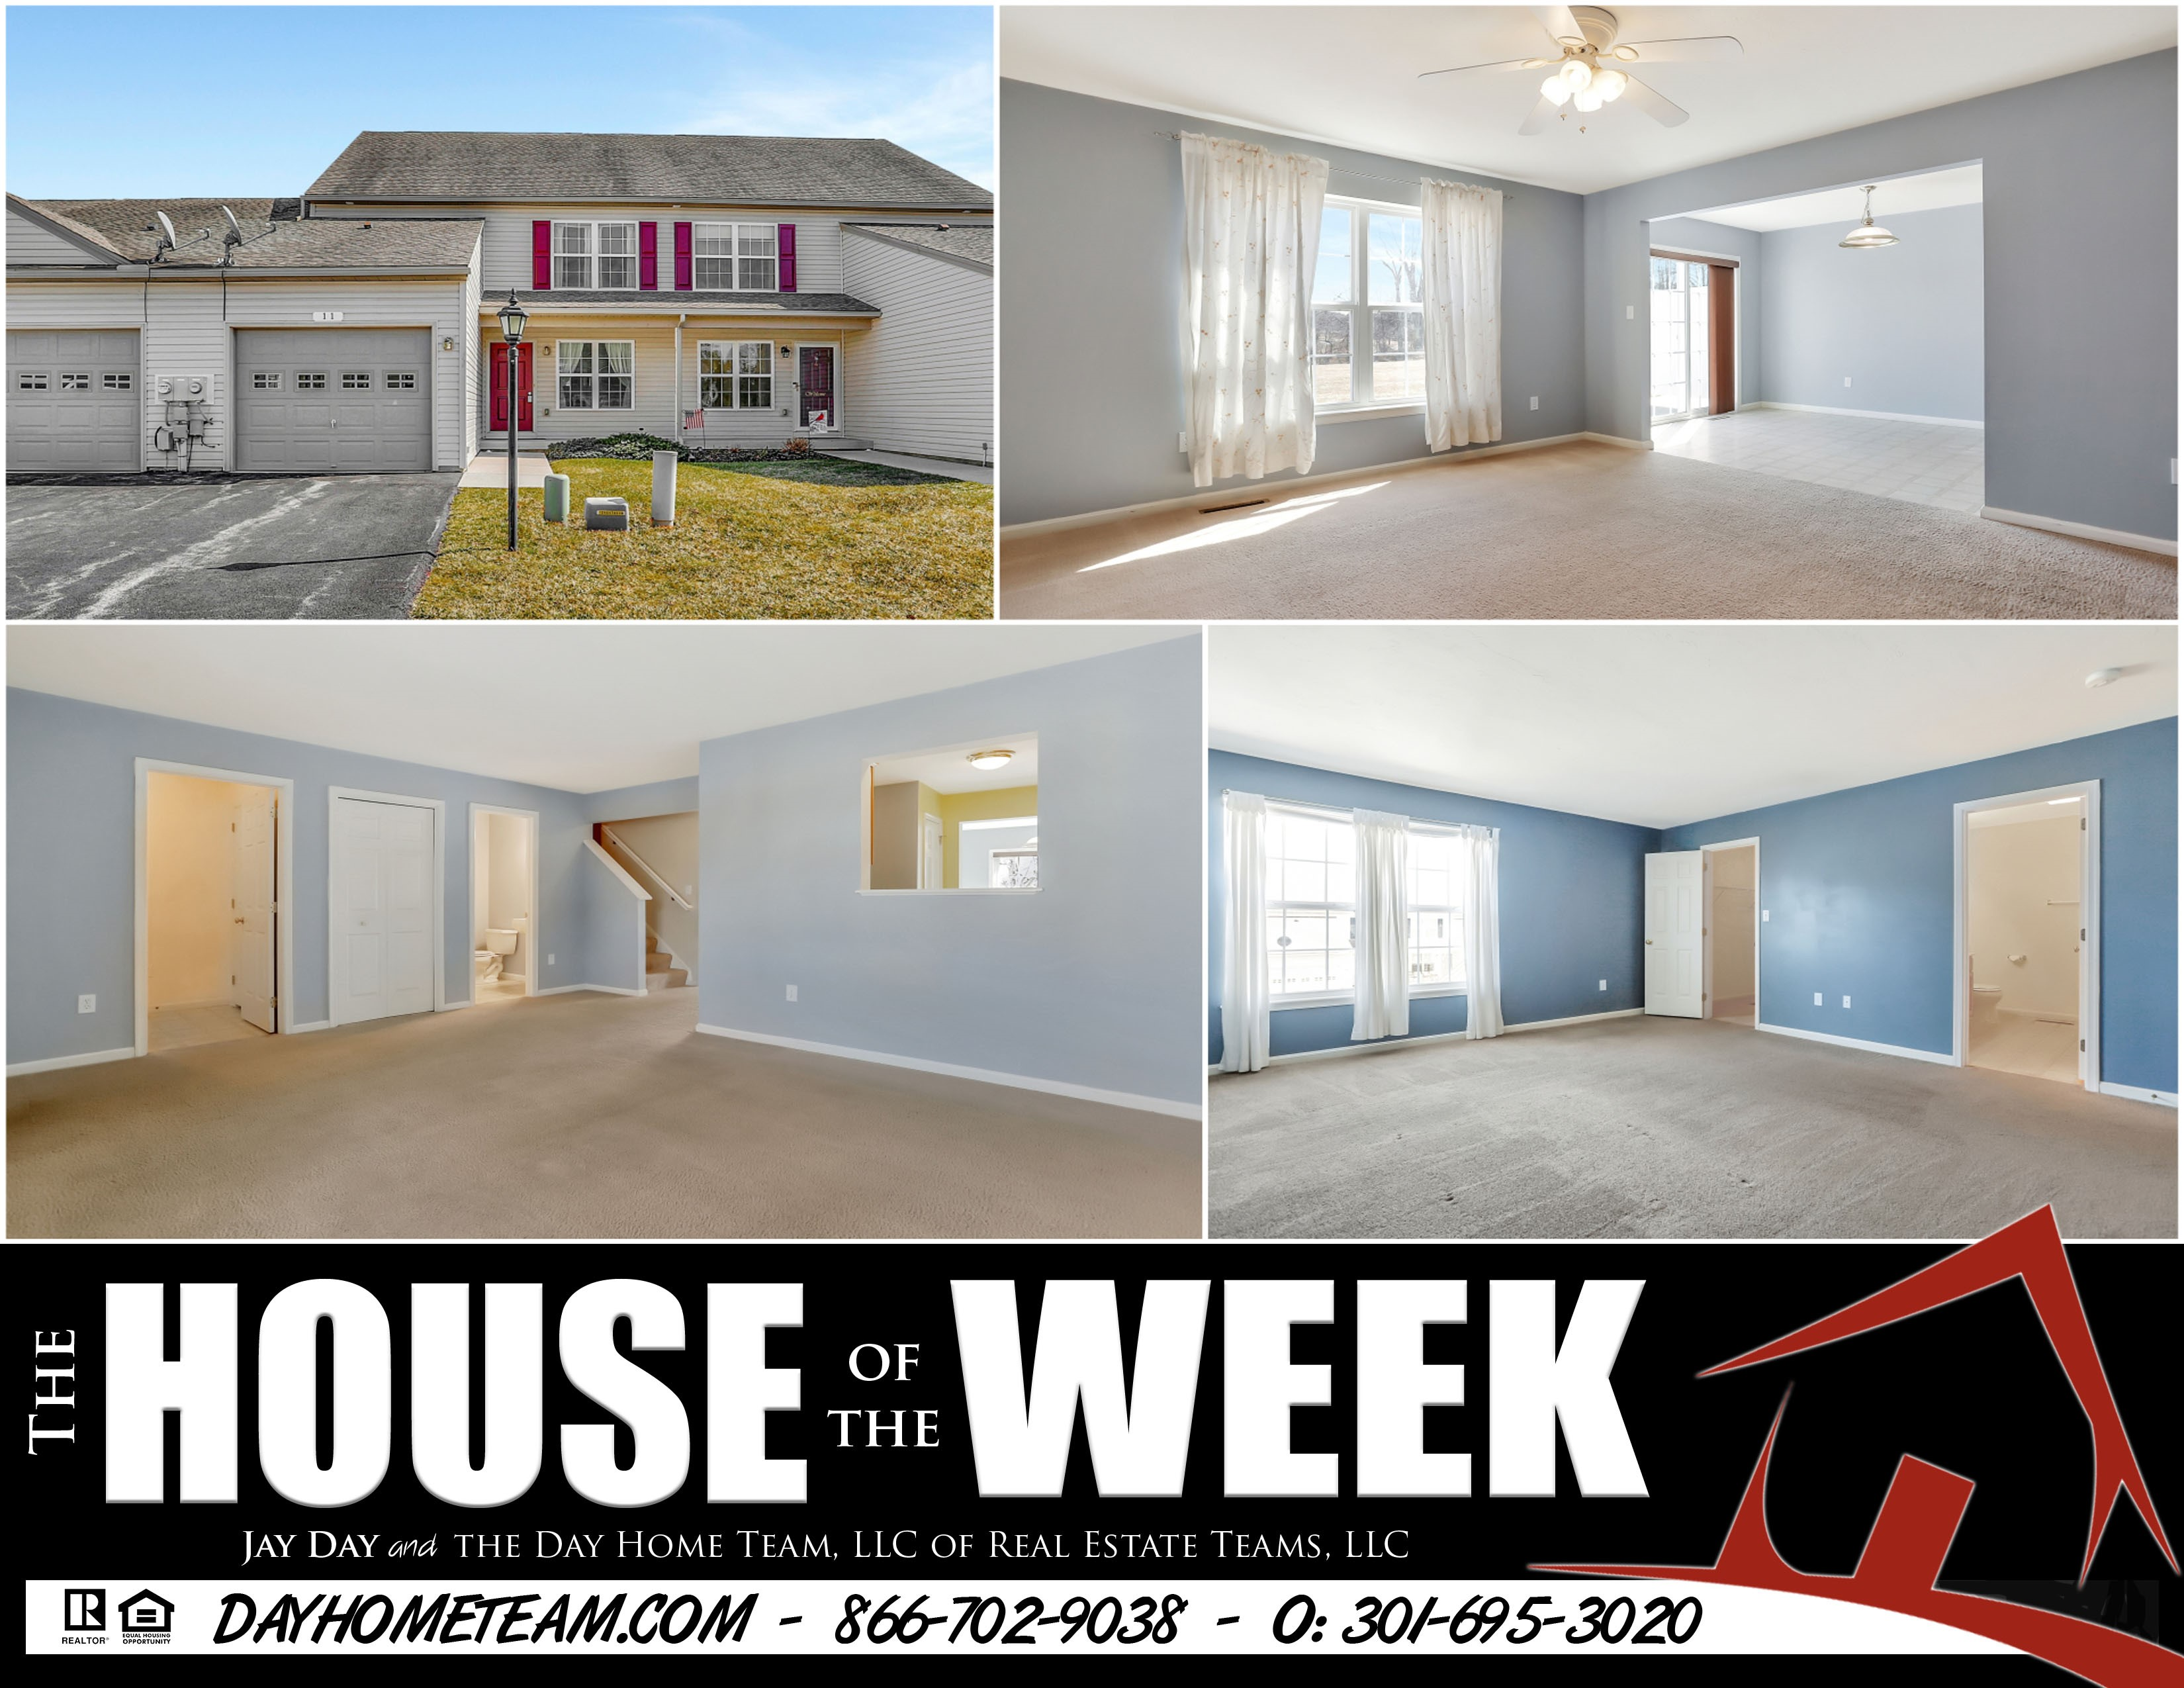 Picture of the featured house of the week